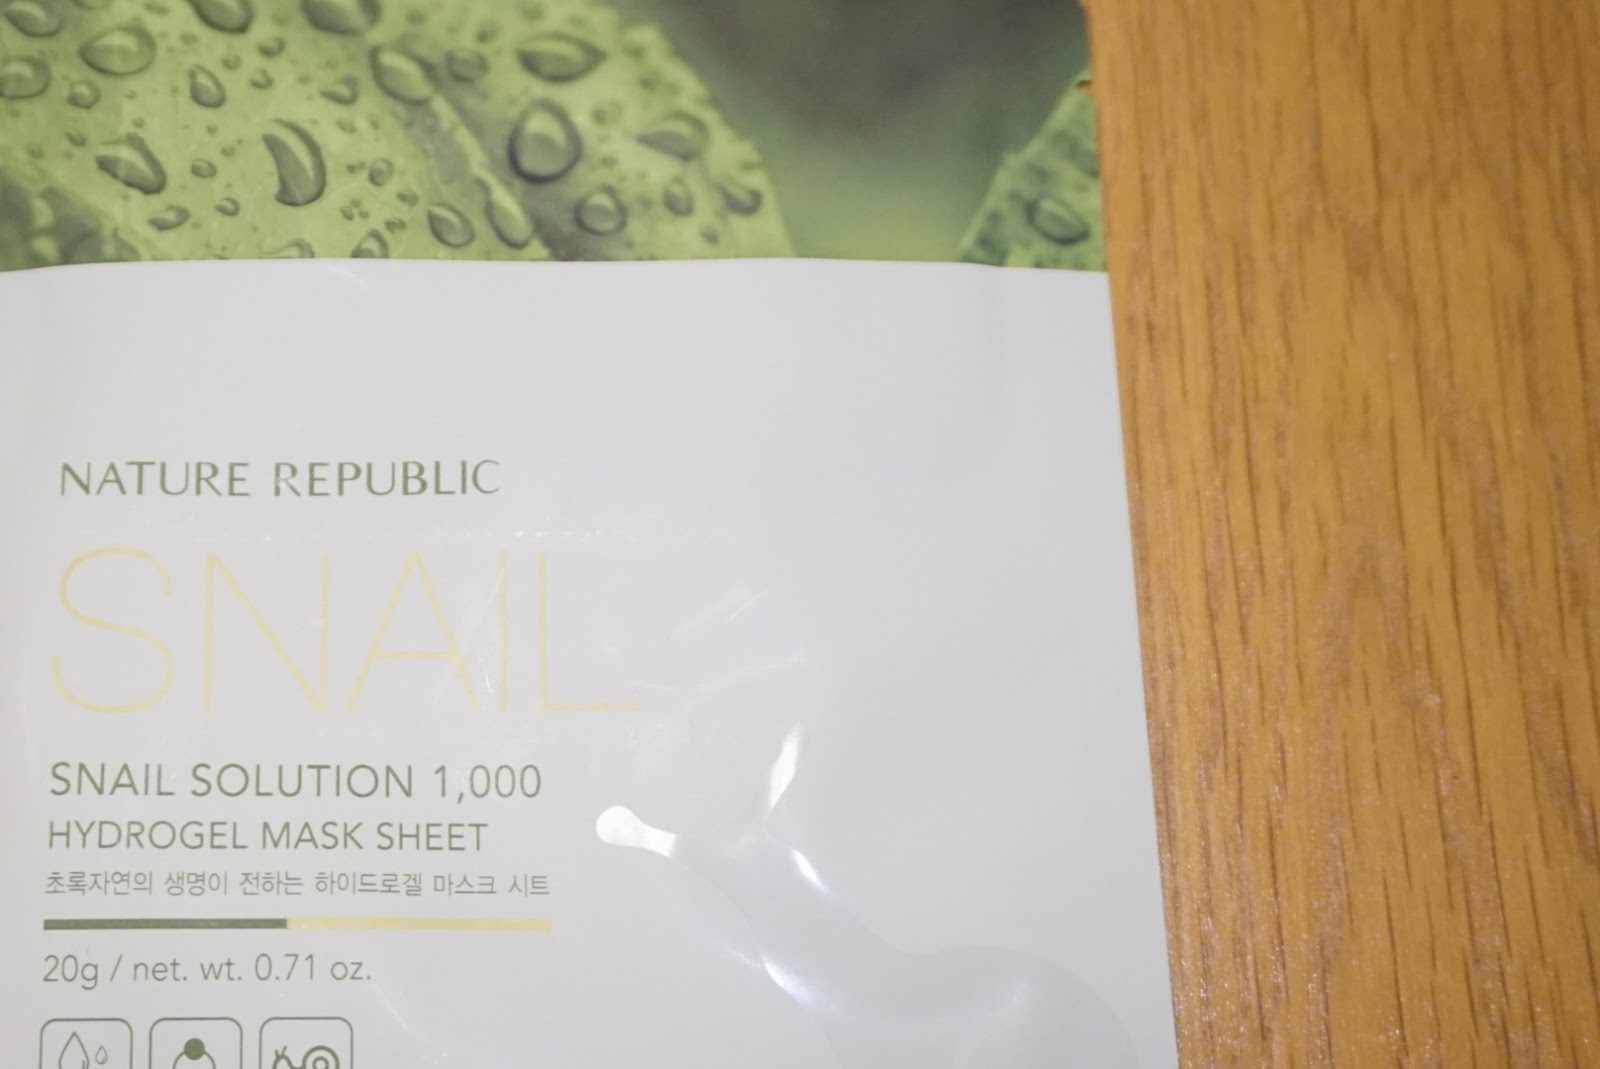 nature republic snail mucus solution mask hydrogel korean